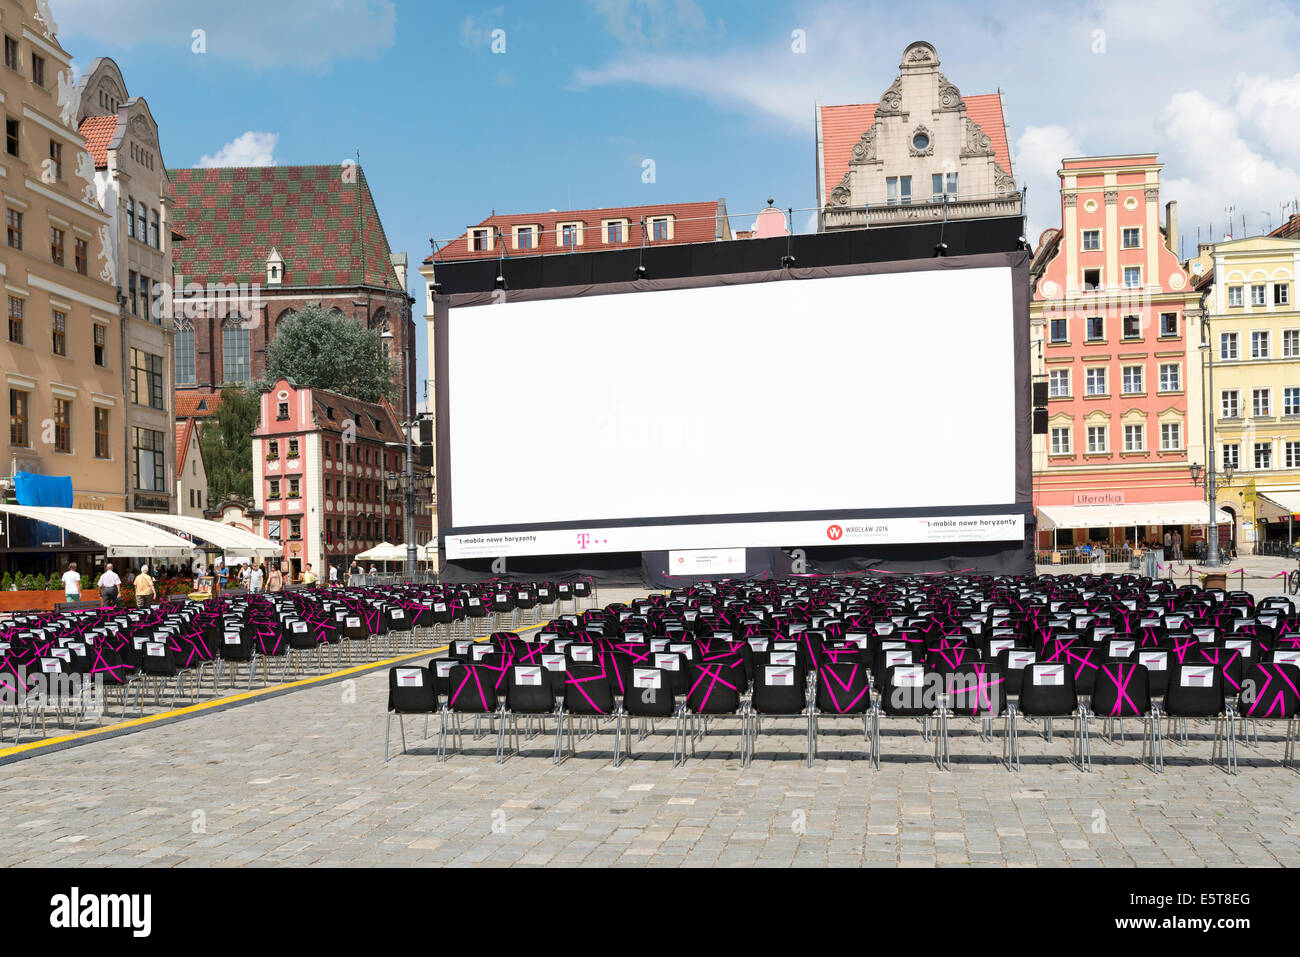 Empty cinema before the evening show as part of New Horizons Cinema, Poland s Largest Art House Cinema. - Stock Image